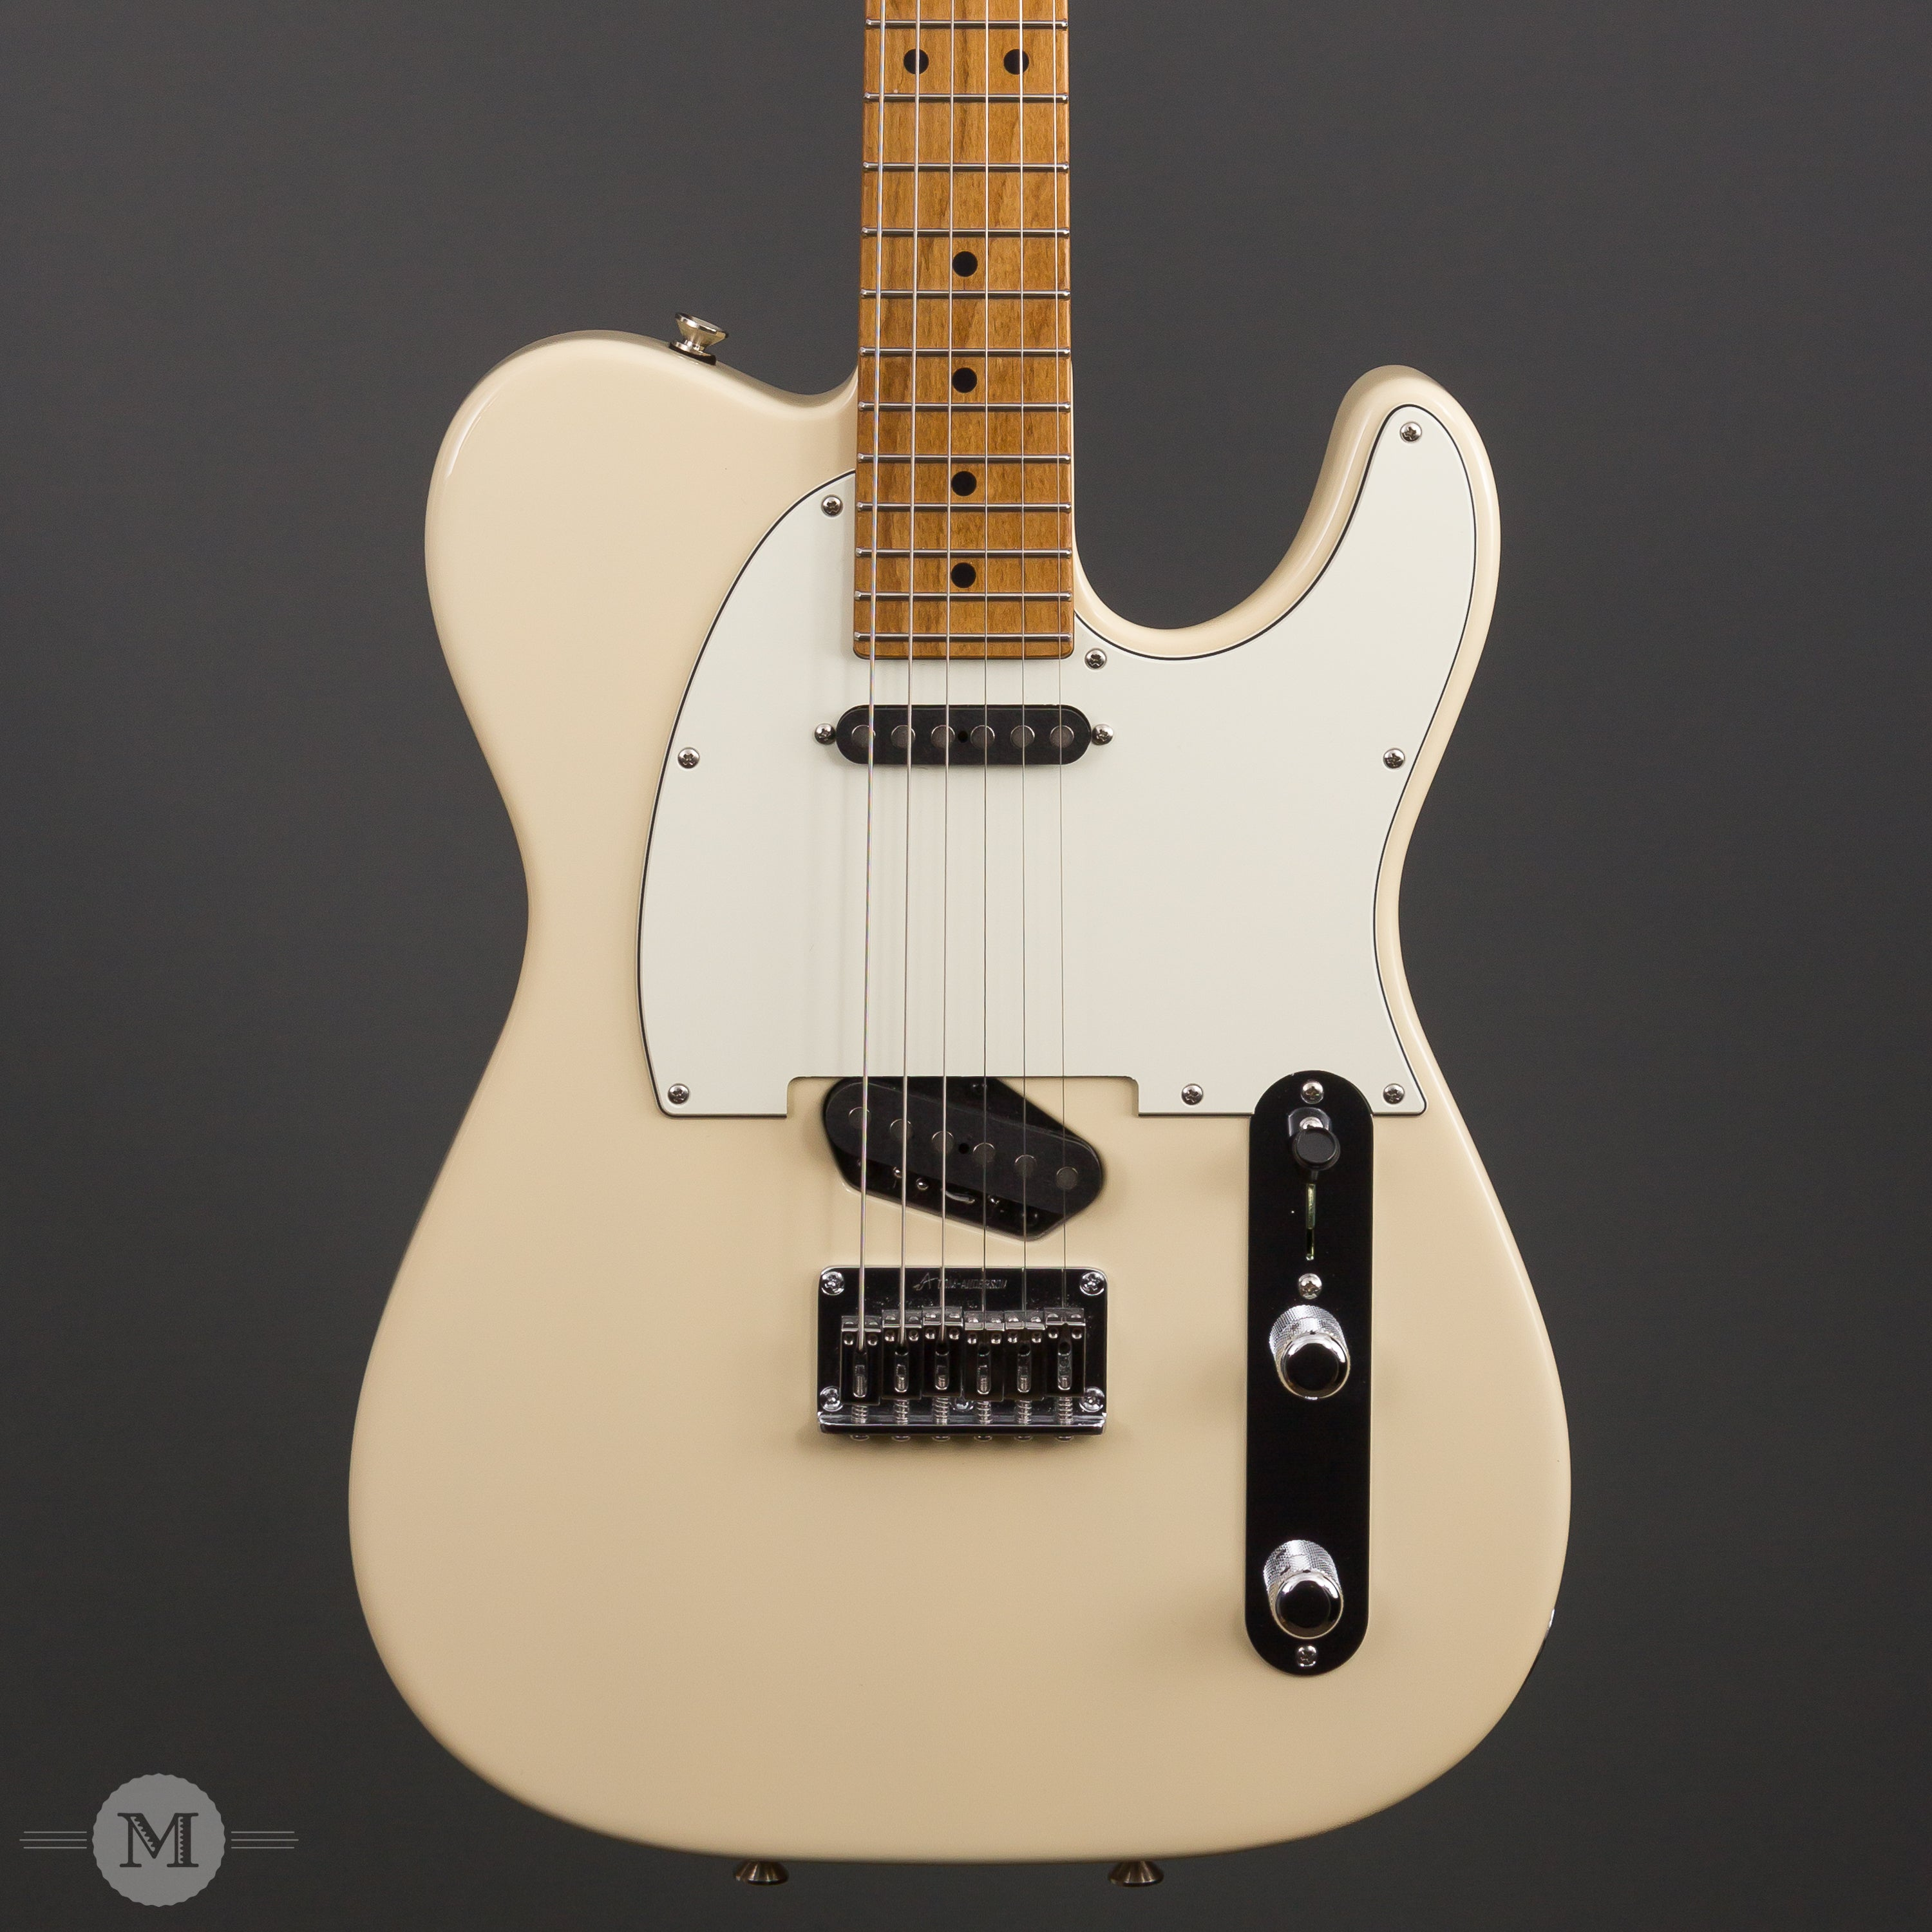 Tom Anderson Guitars - Hollow T Classic - Blonde